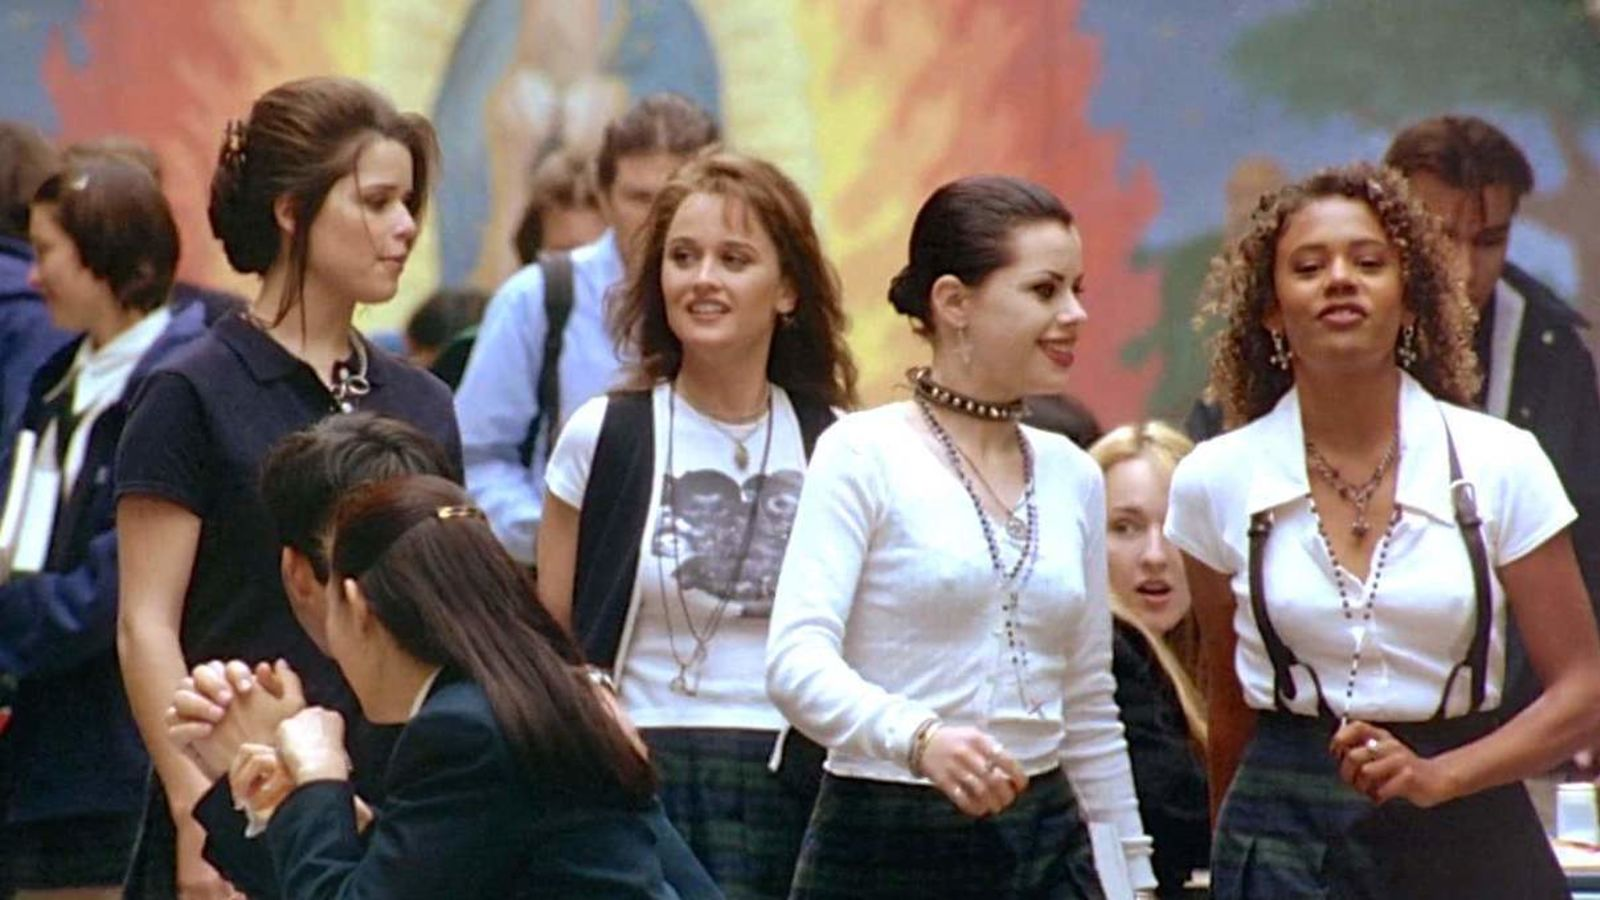 Neve Cambell, Rachel True, Fairuza Balk, and Robin Tunney in The Craft (1996)